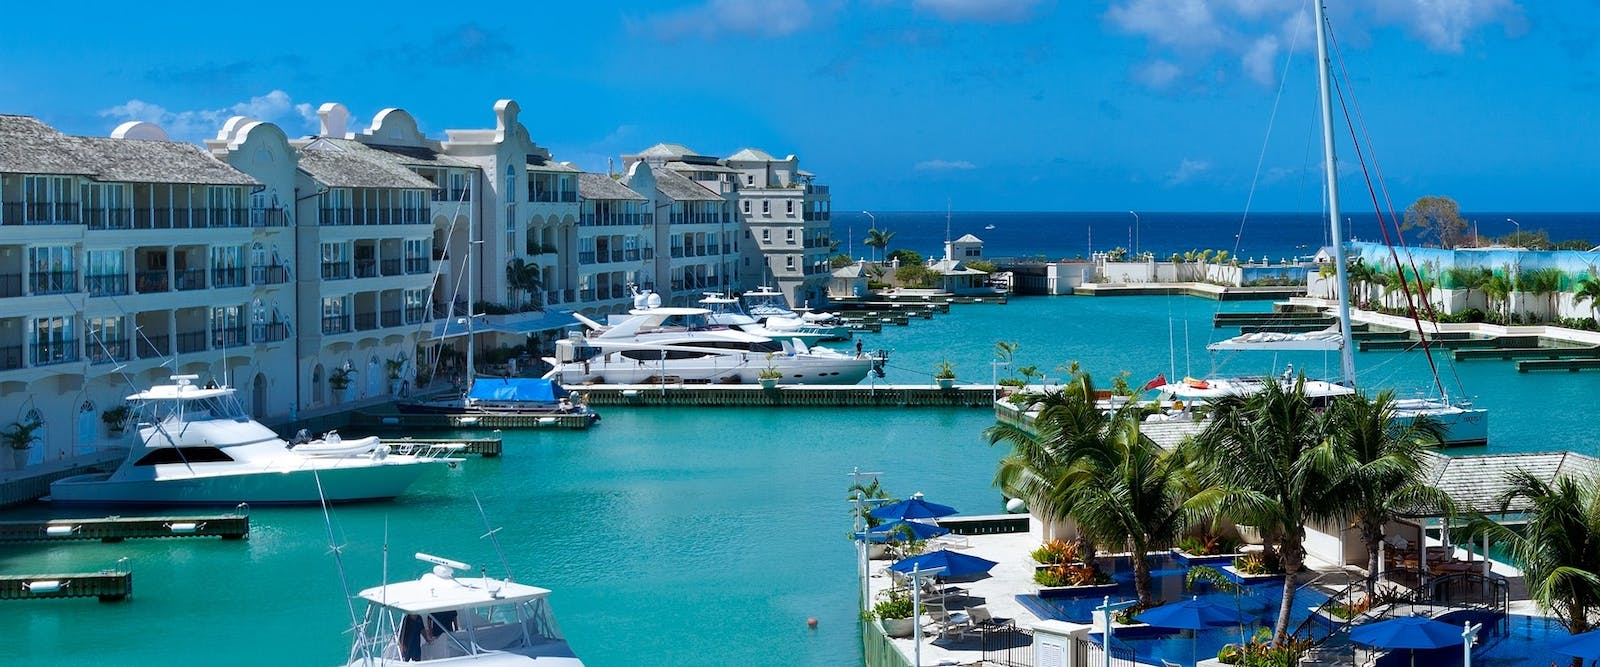 Marina View at Port Ferdinand Marina & Luxury Residences, Barbados